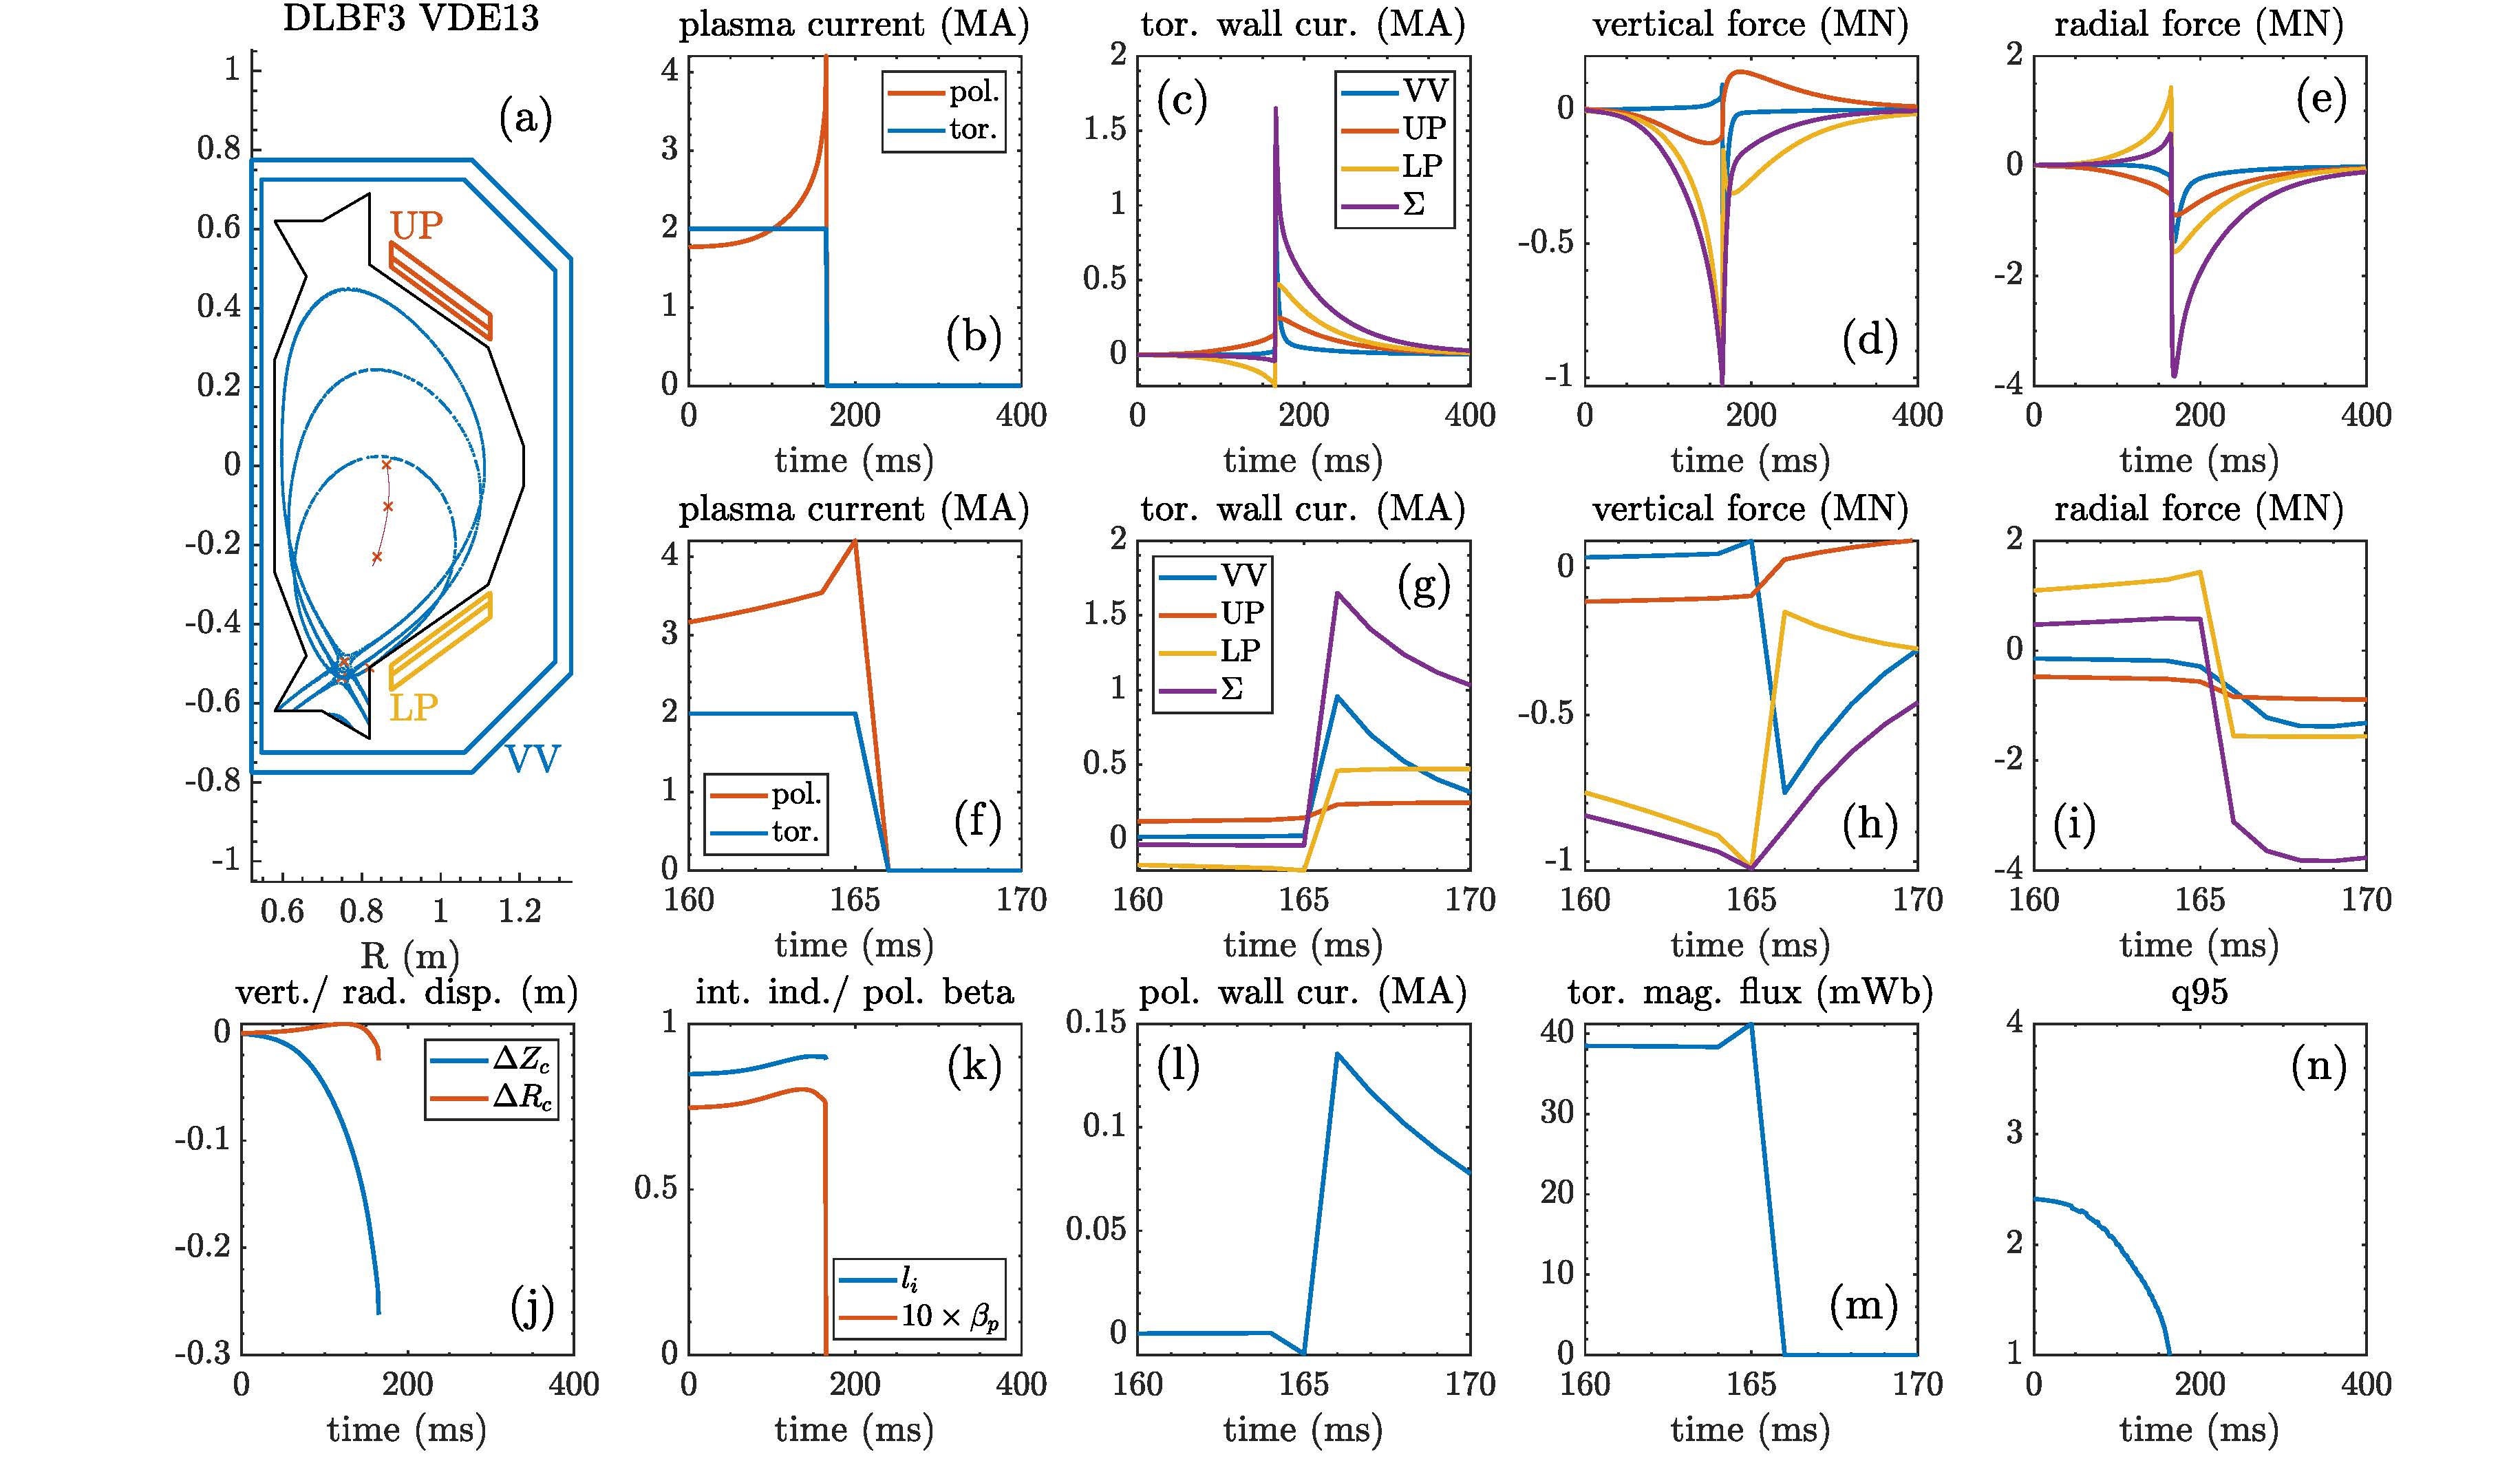 Dynamics of plasma and wall parameters for a slow VDE followed by a TQ and a CQ.